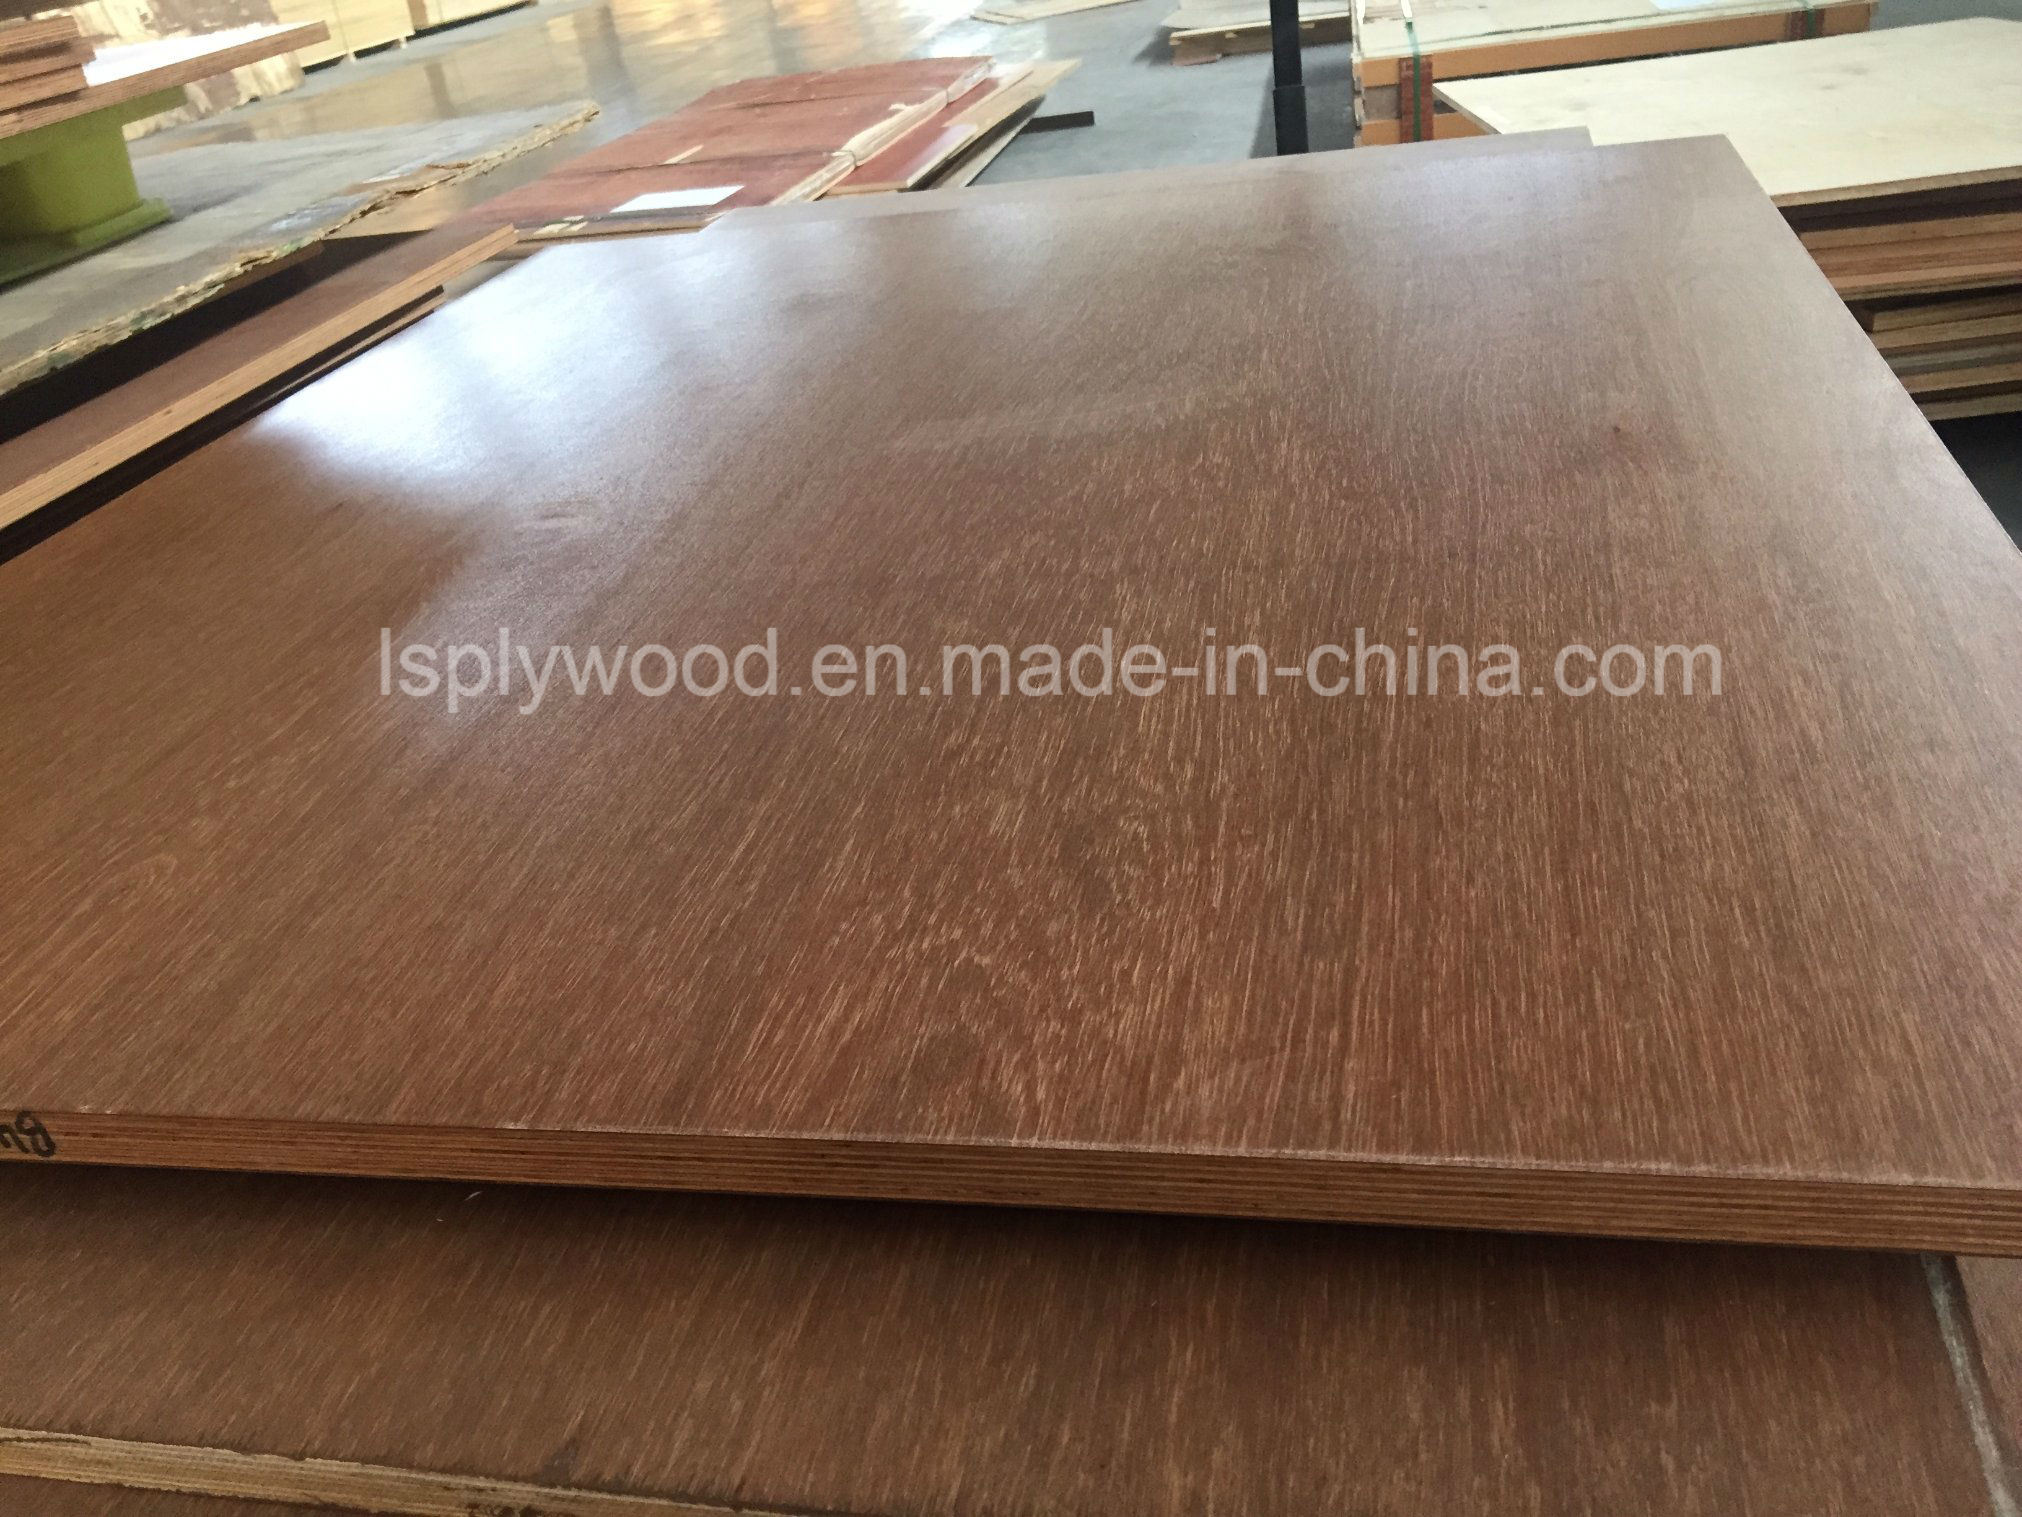 China 11 Ply 18mm Laminated Marine Plywood Timber For Concrete Formwork Boards